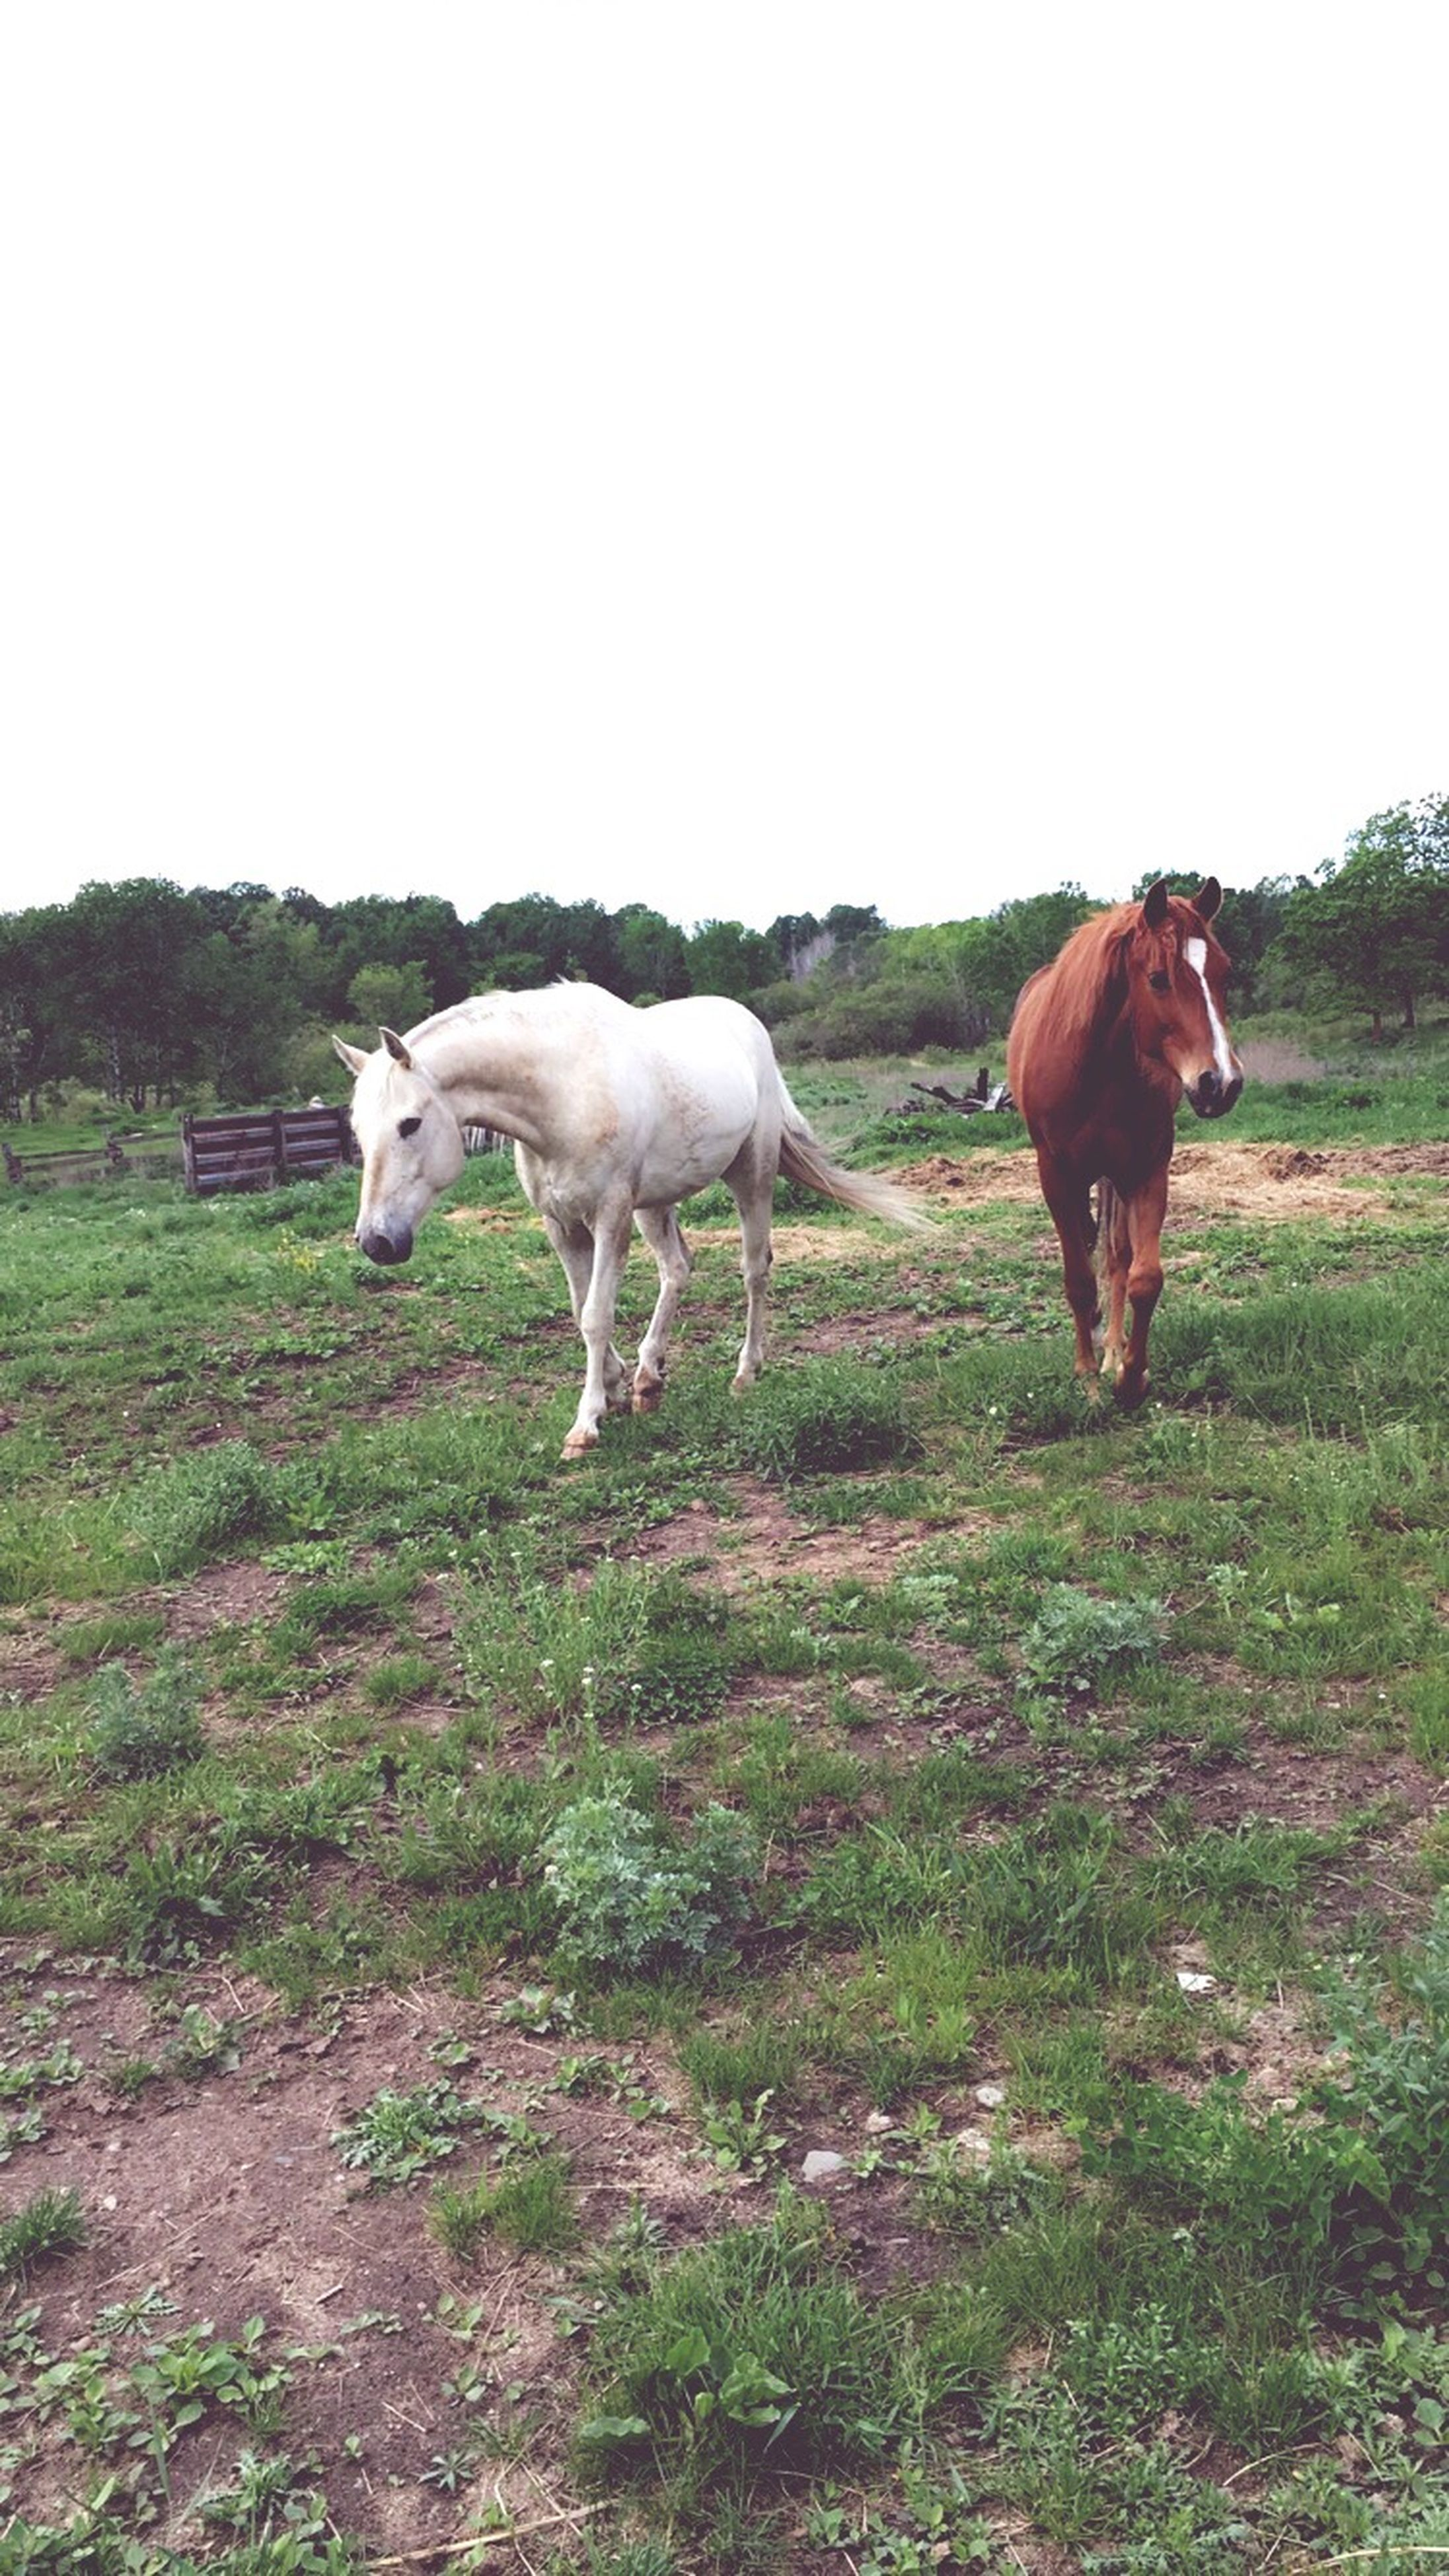 domestic animals, animal themes, mammal, grass, field, livestock, grassy, clear sky, landscape, copy space, full length, standing, nature, pets, horse, one animal, grazing, two animals, herbivorous, tranquility